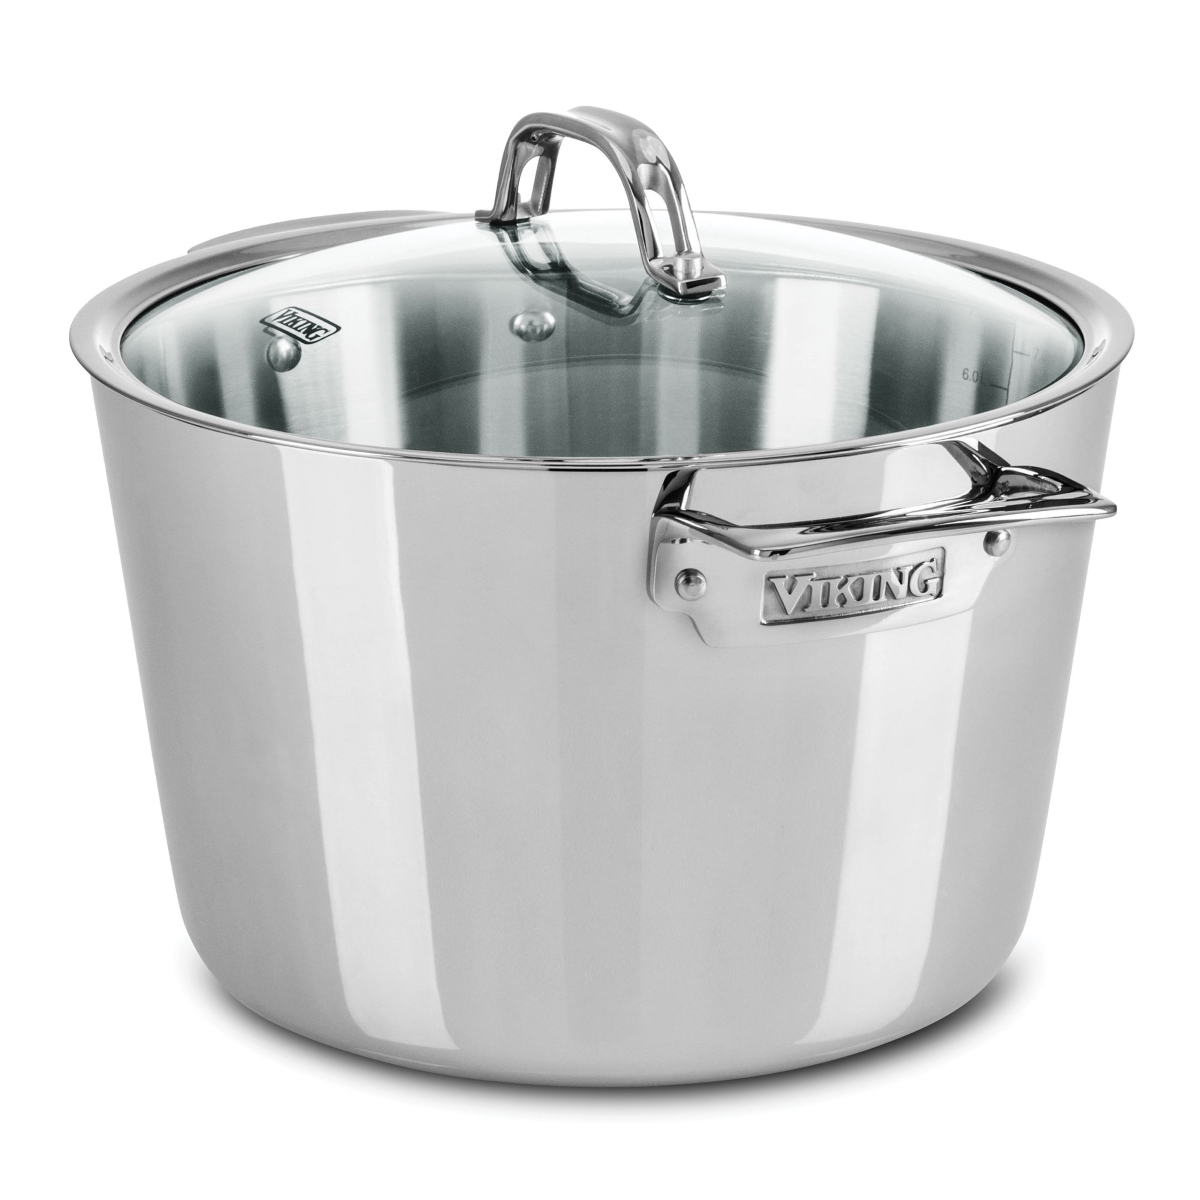 Viking 8-quart Contemporary Tri-Ply Stainless Steel Stock Pot